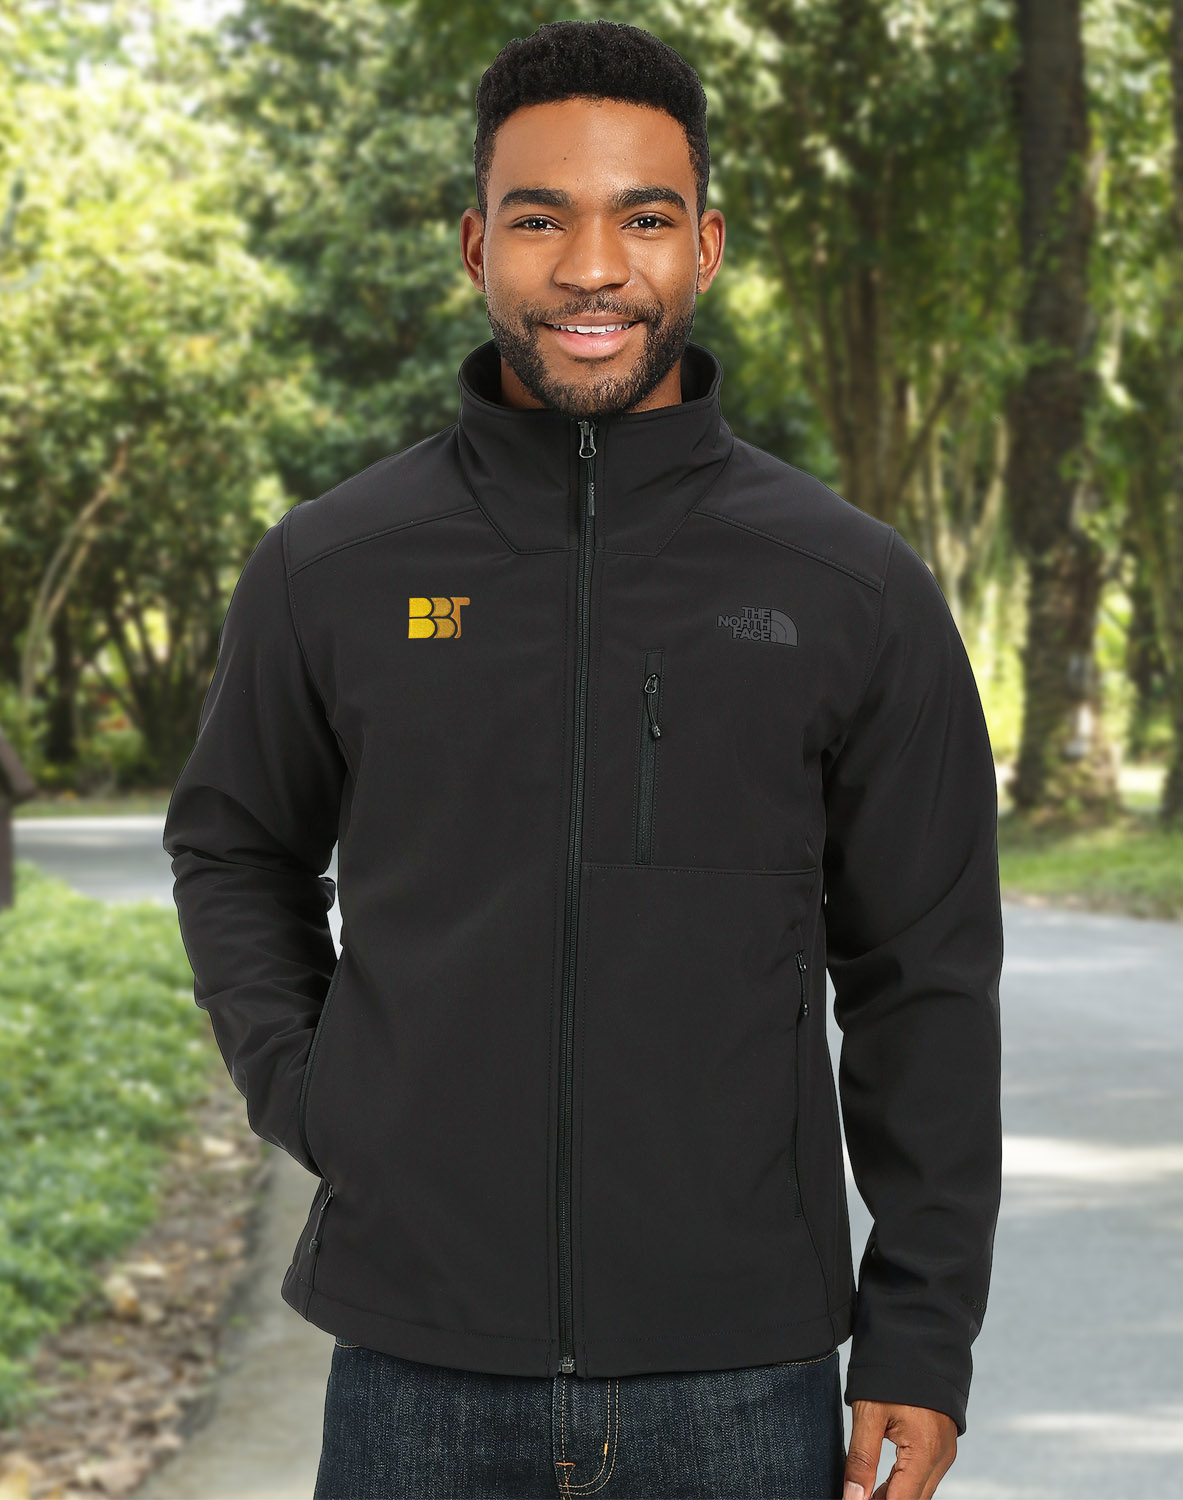 5c3d9656e4 Customizable The North Face Jackets